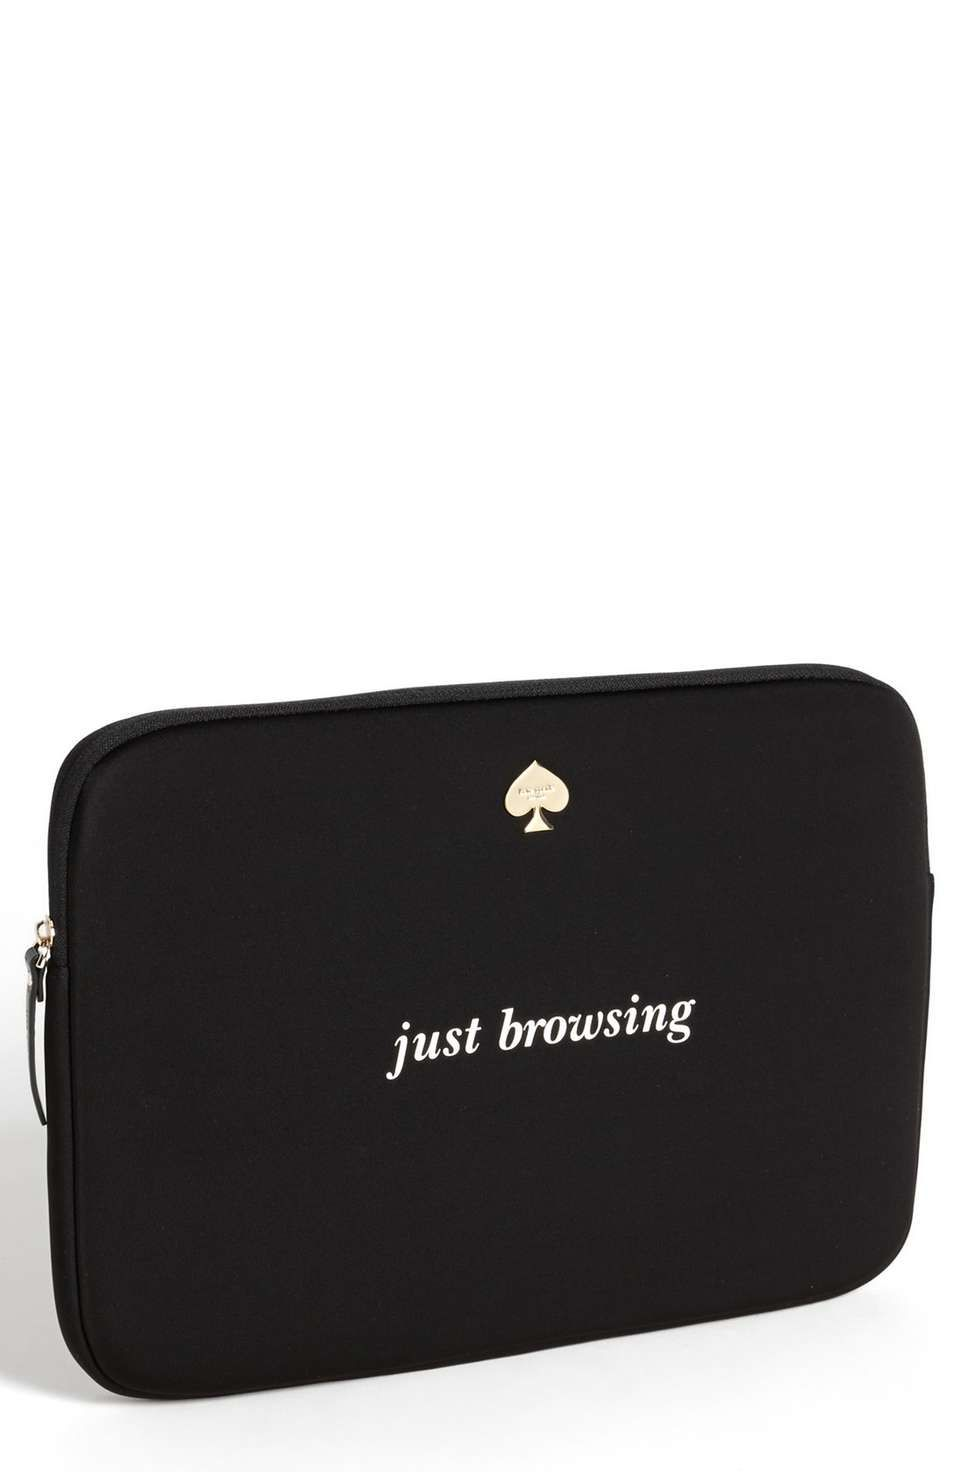 Kate Spade New York kate spade new york just browsing laptop